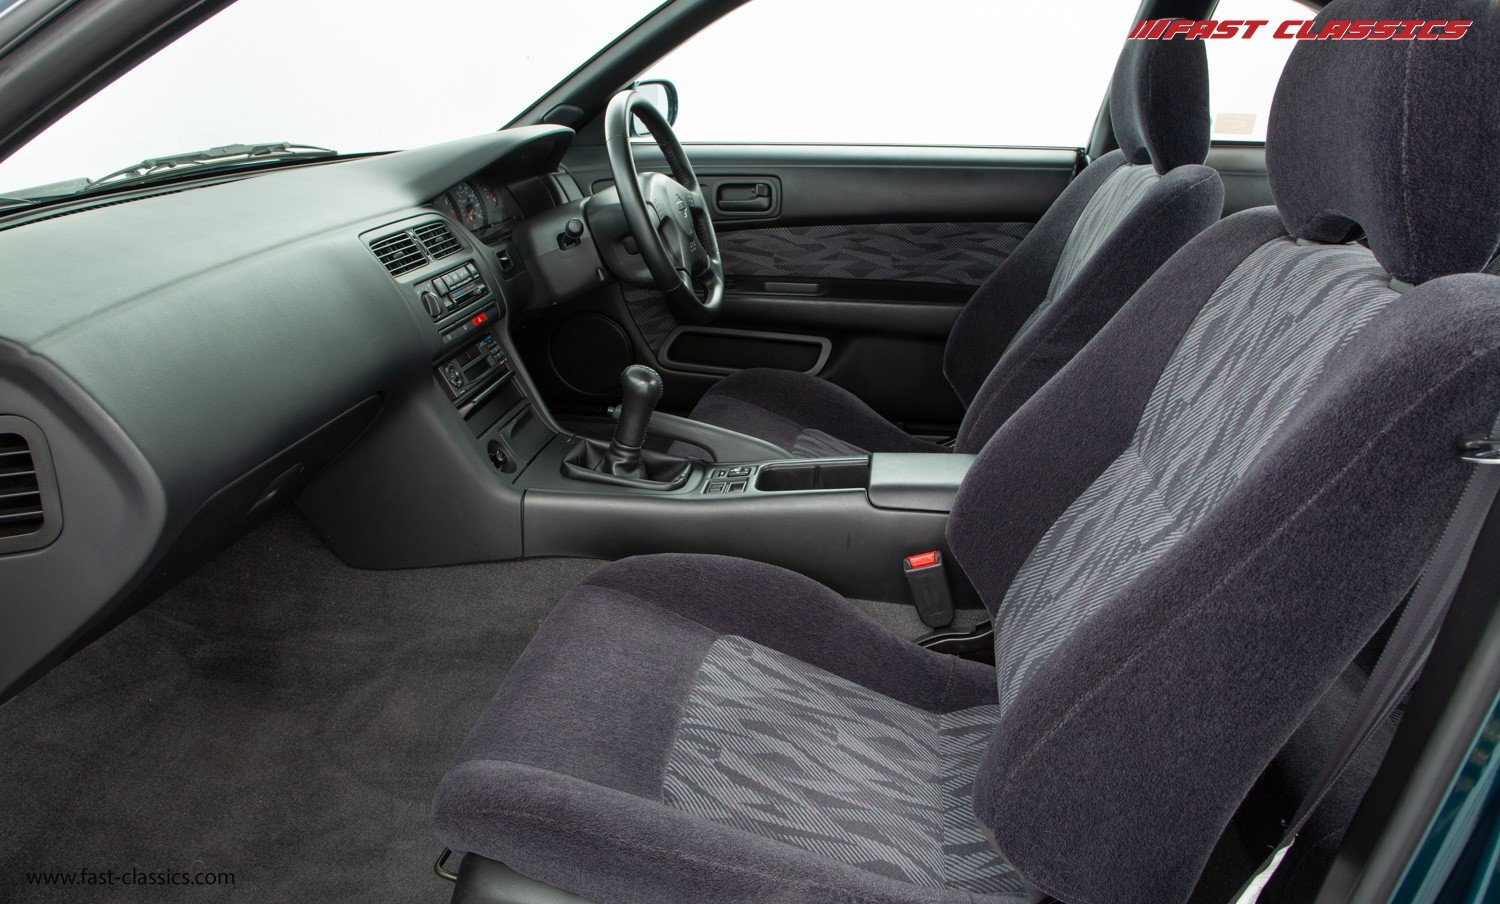 1999 NISSAN 200SX // UK SUPPLIED // 18K MILES // FAMILY OWNED For Sale (picture 5 of 6)